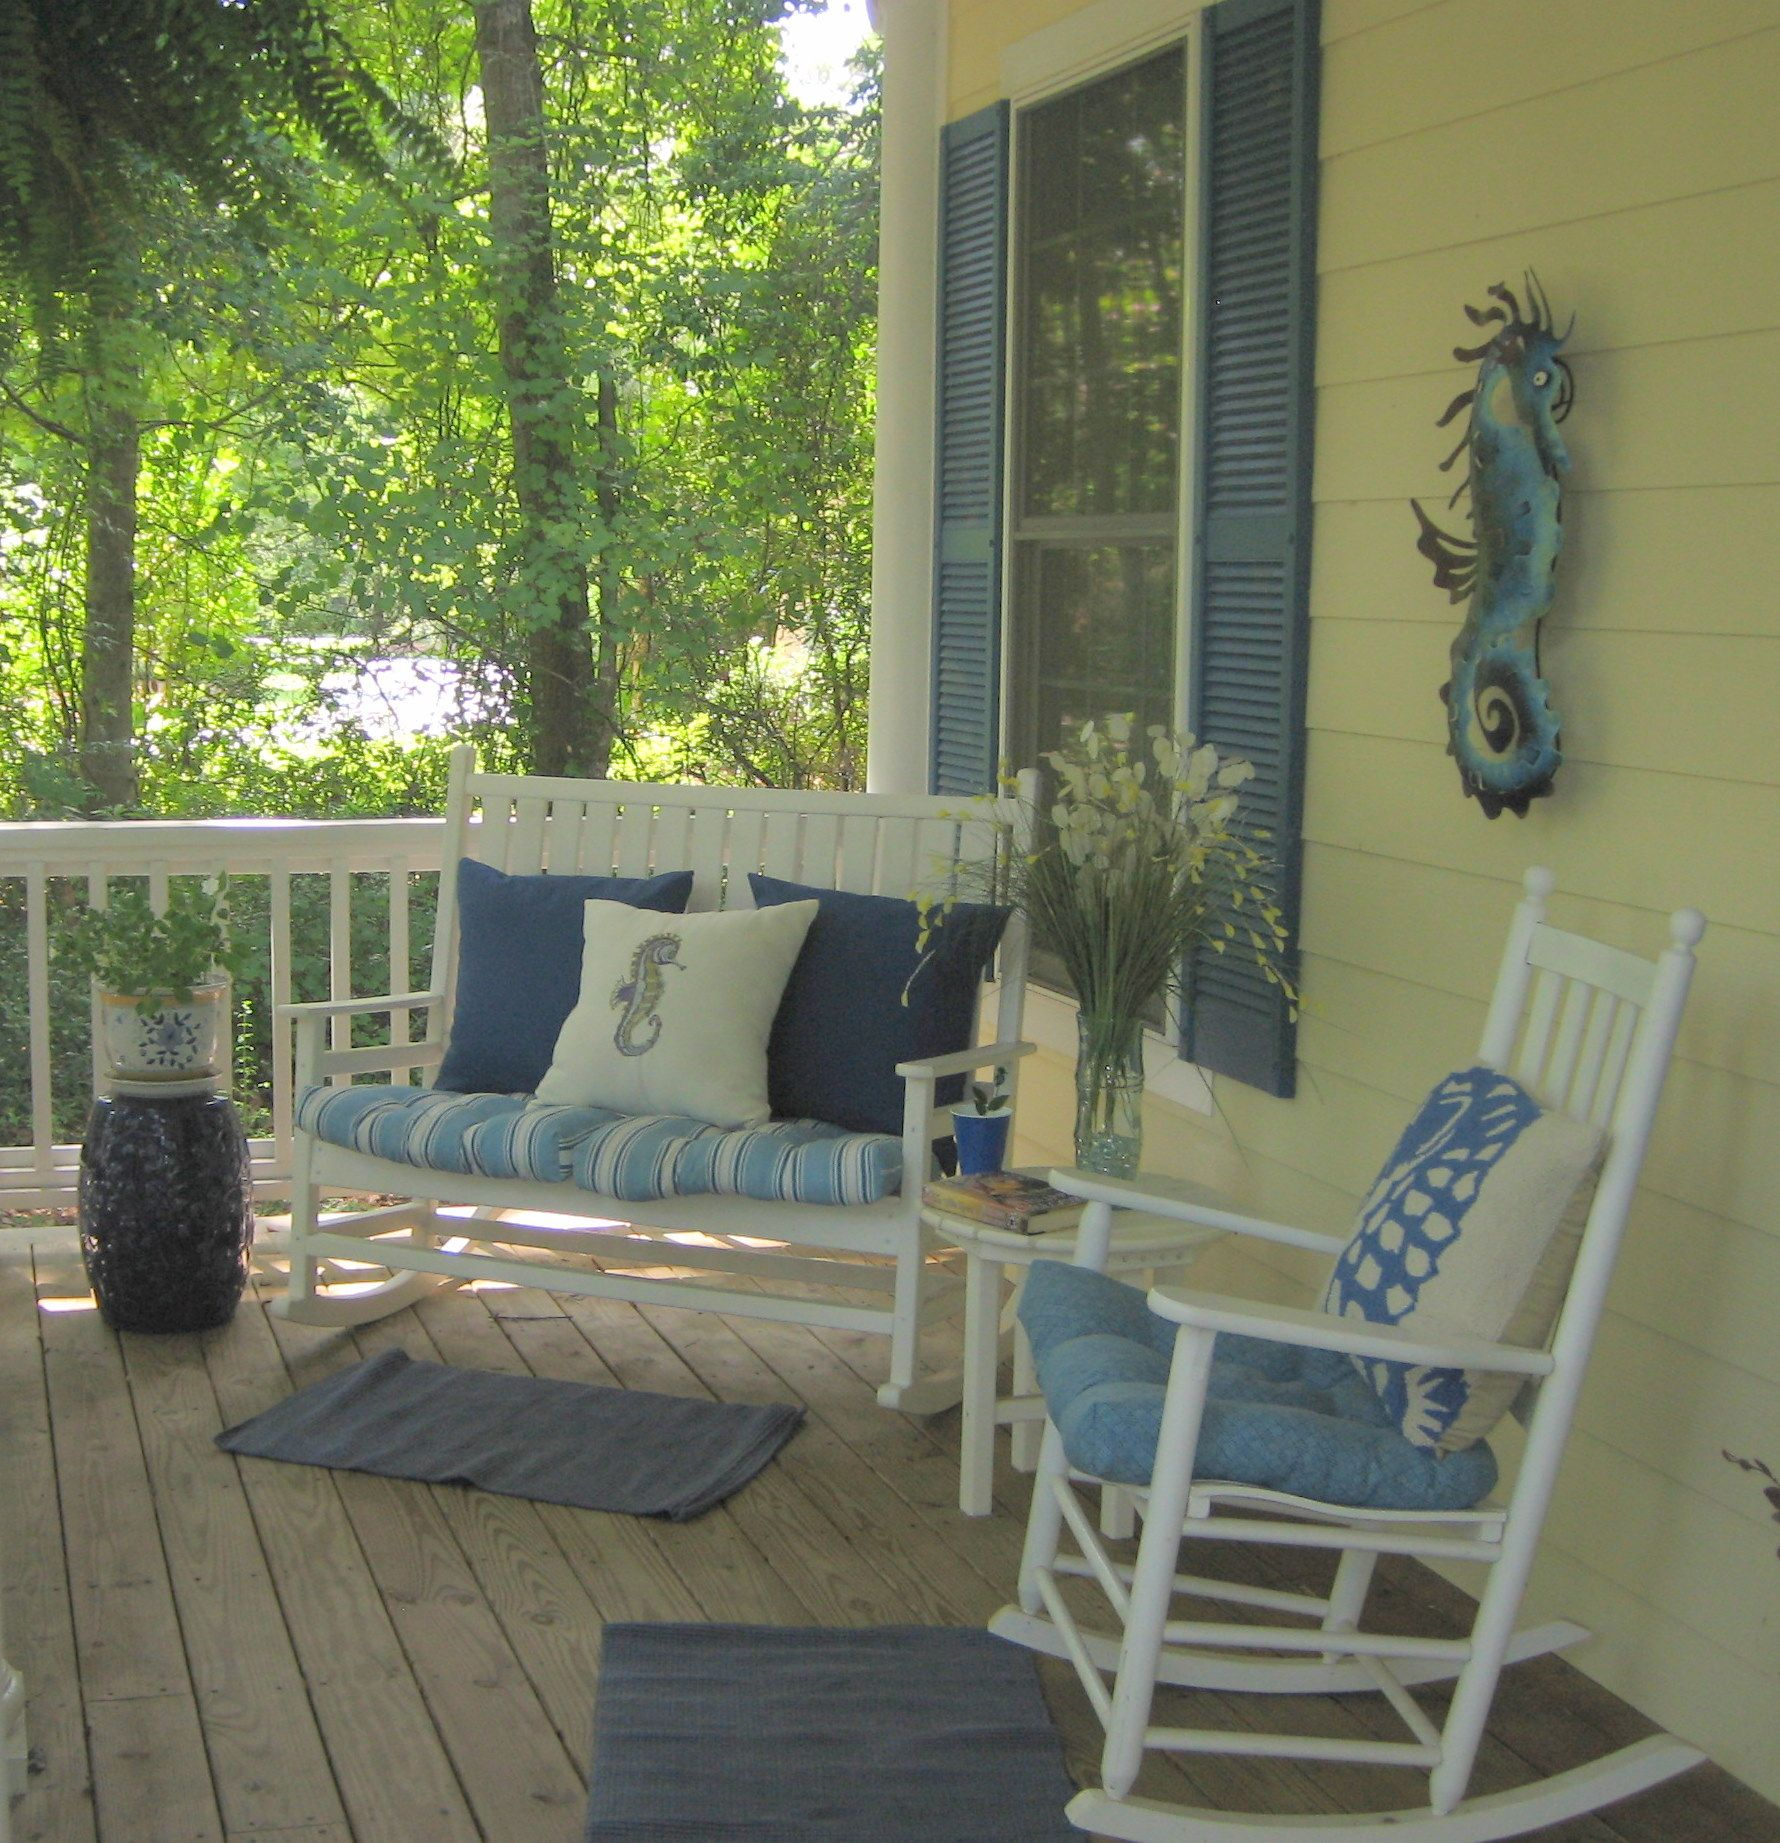 10 Beach House Decor Ideas: Yepp, Rocking Chair And Bench On The Front Porch... Only